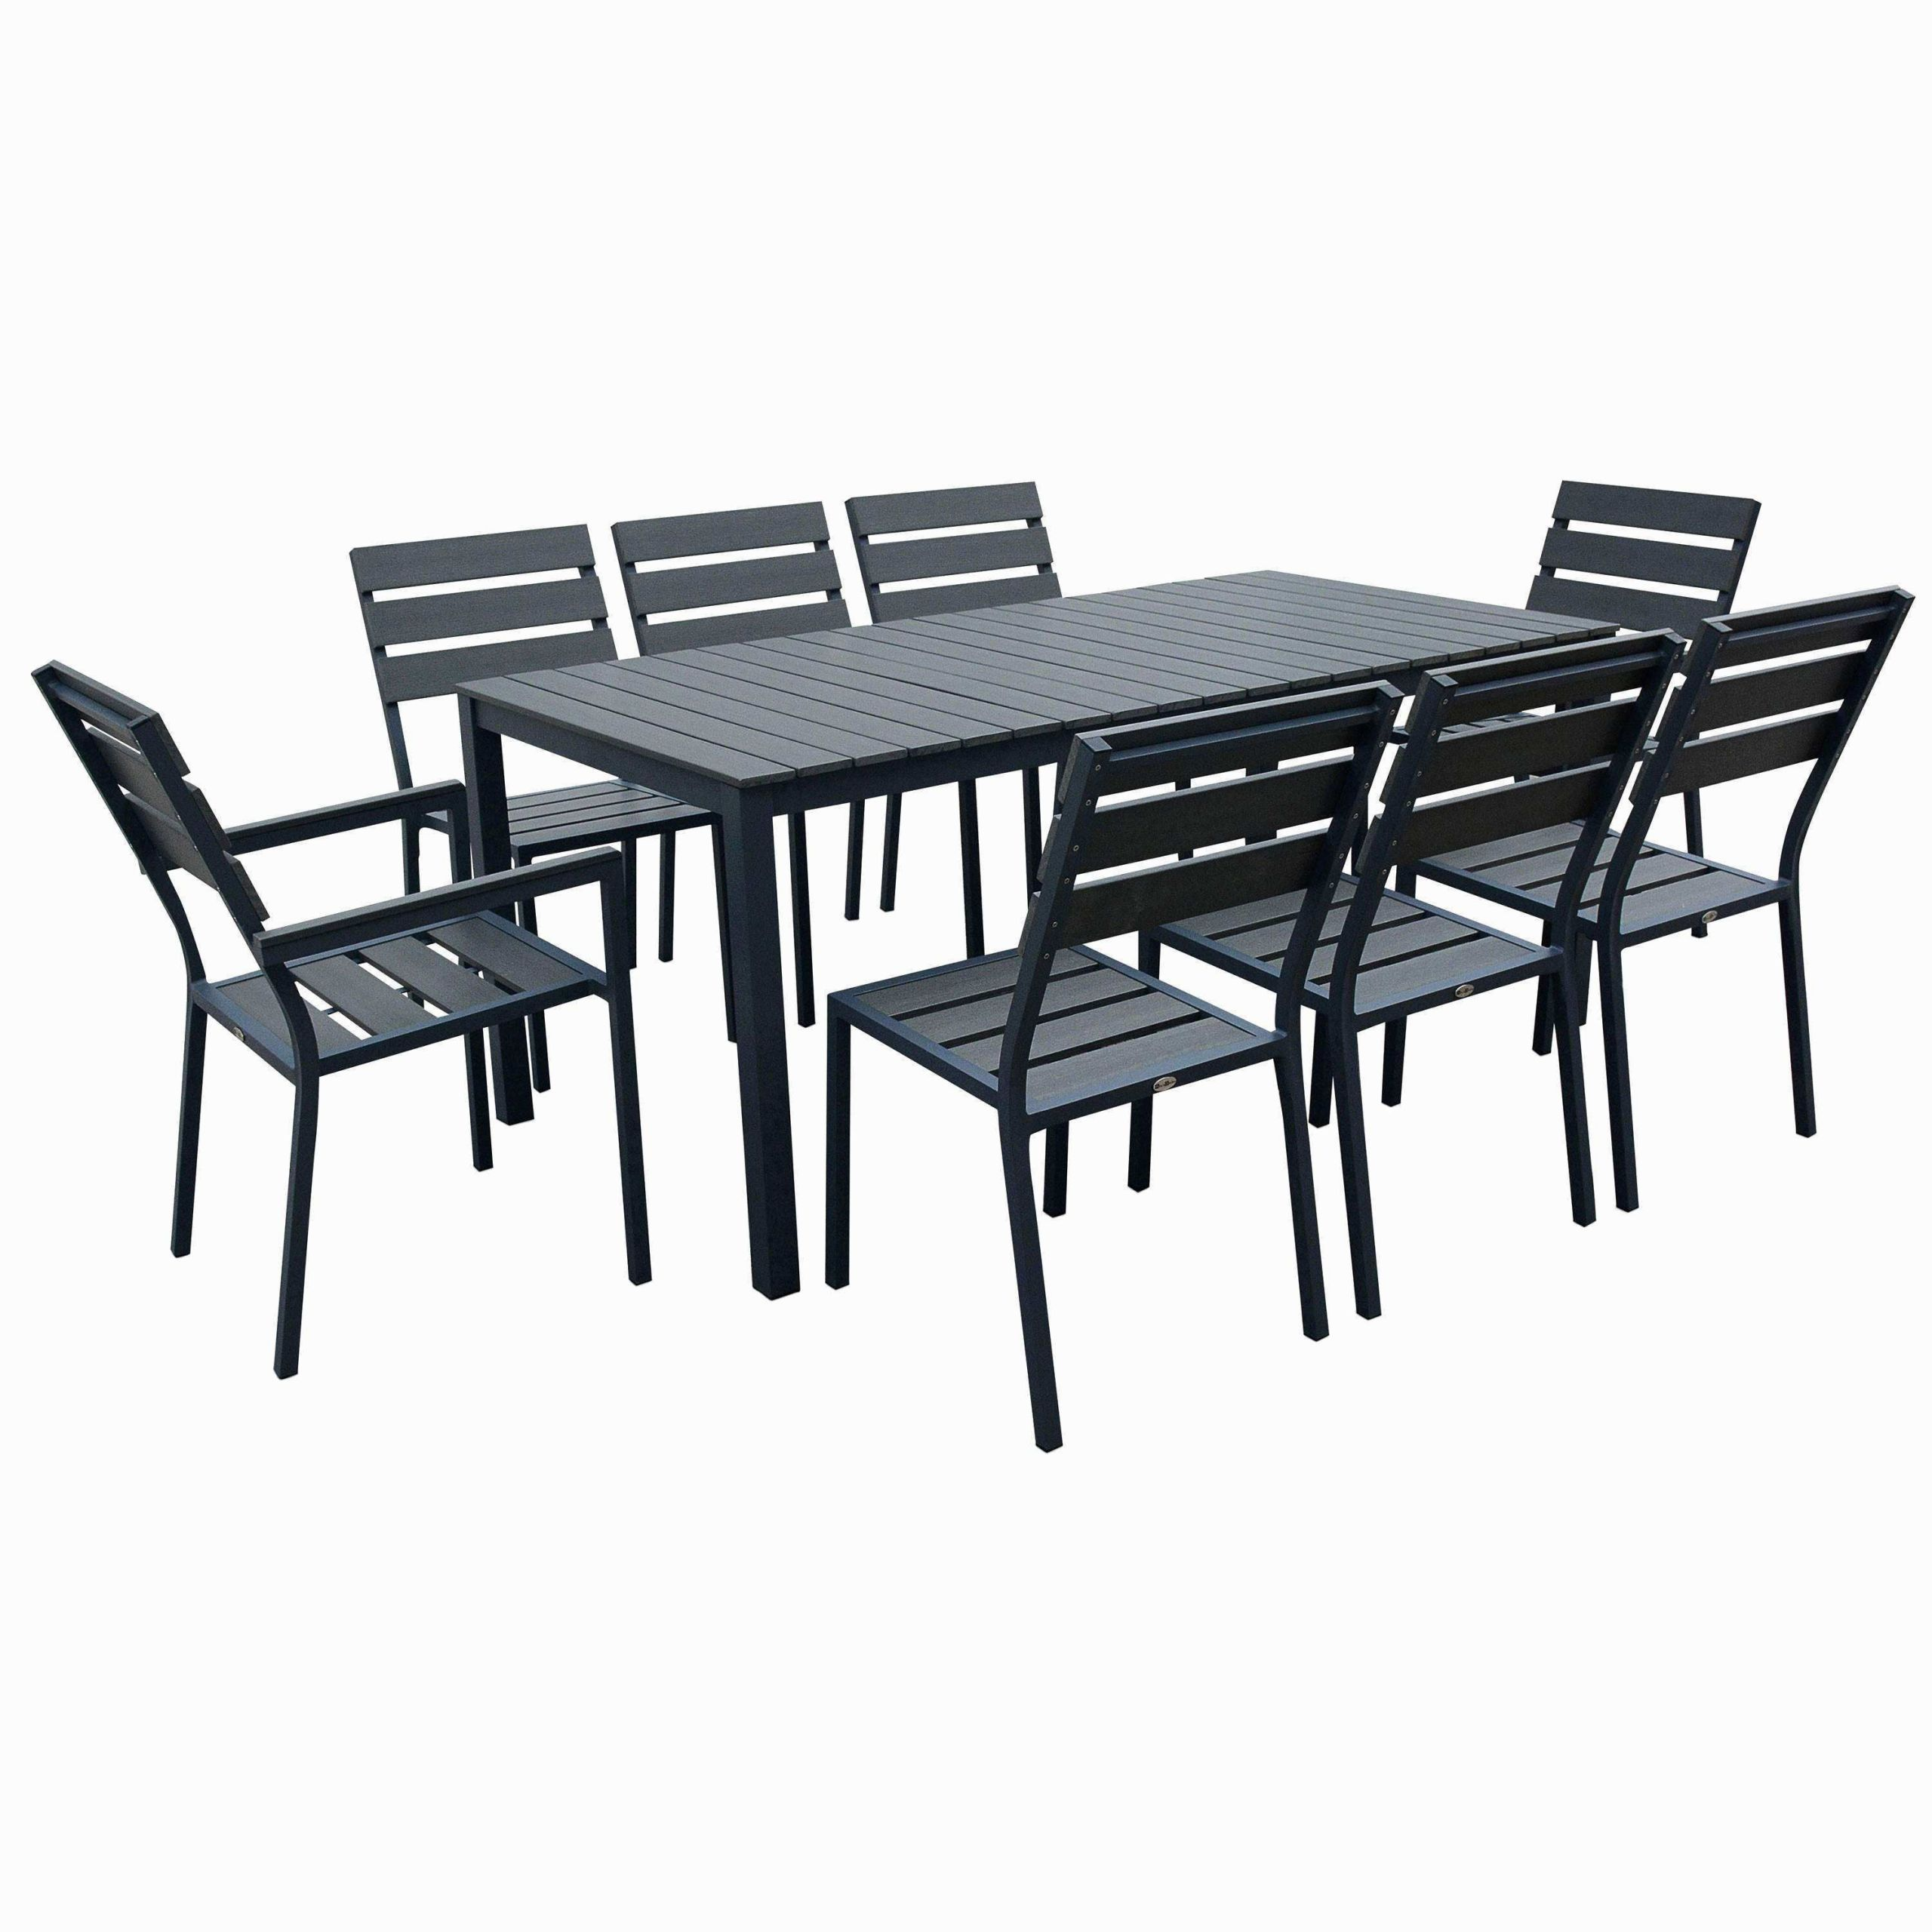 Table De Jardin Bistrot Charmant Table Terrasse Pas Cher Of 32 Luxe Table De Jardin Bistrot